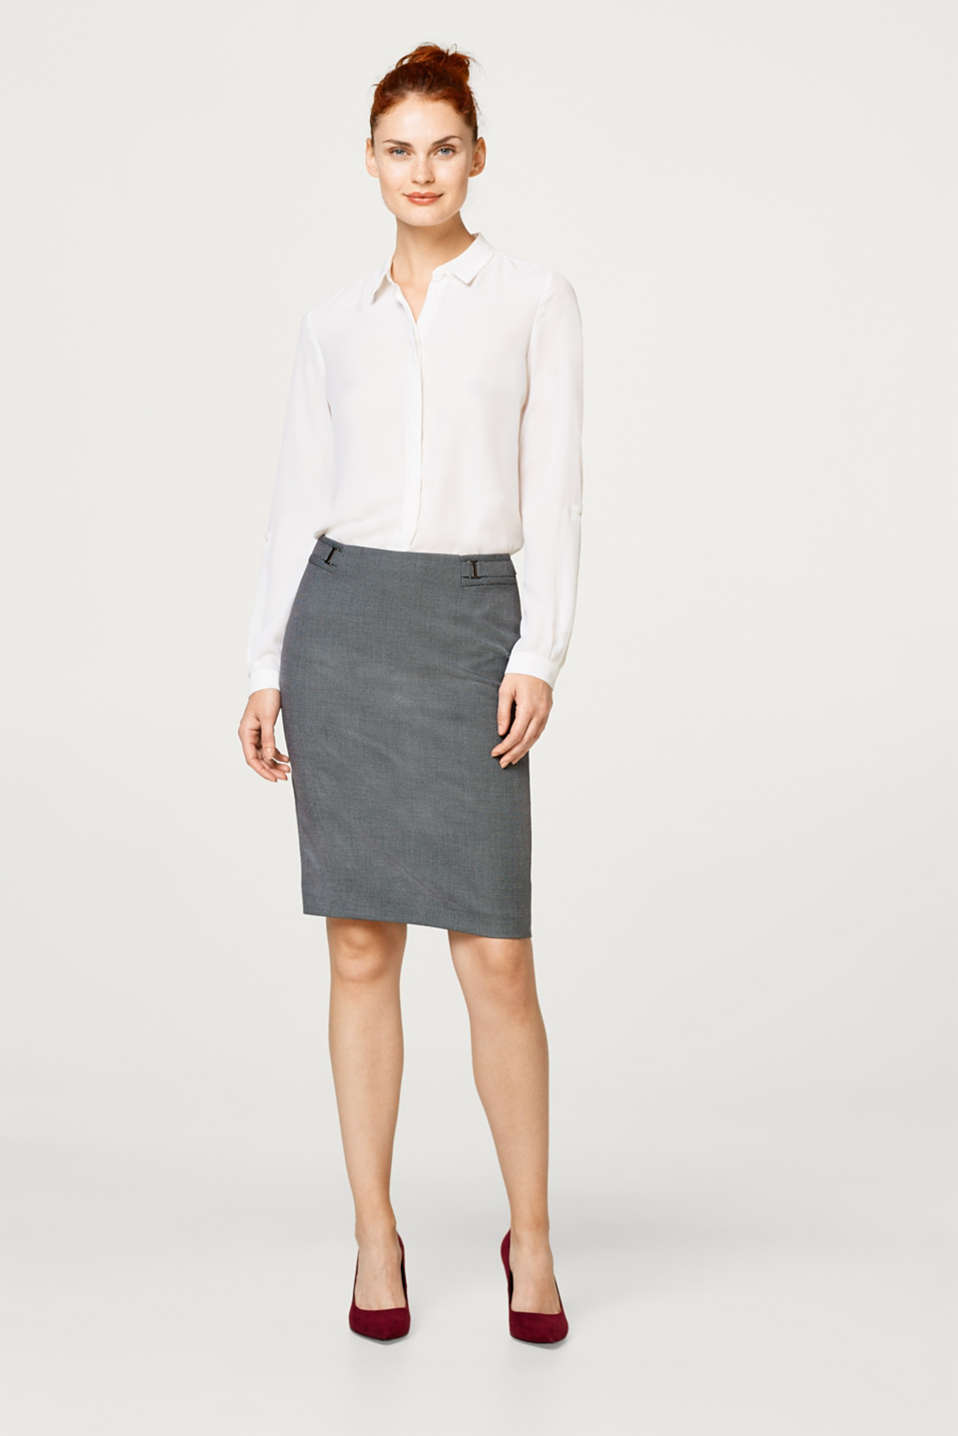 Esprit - Pencil skirt in a salt-and-pepper look